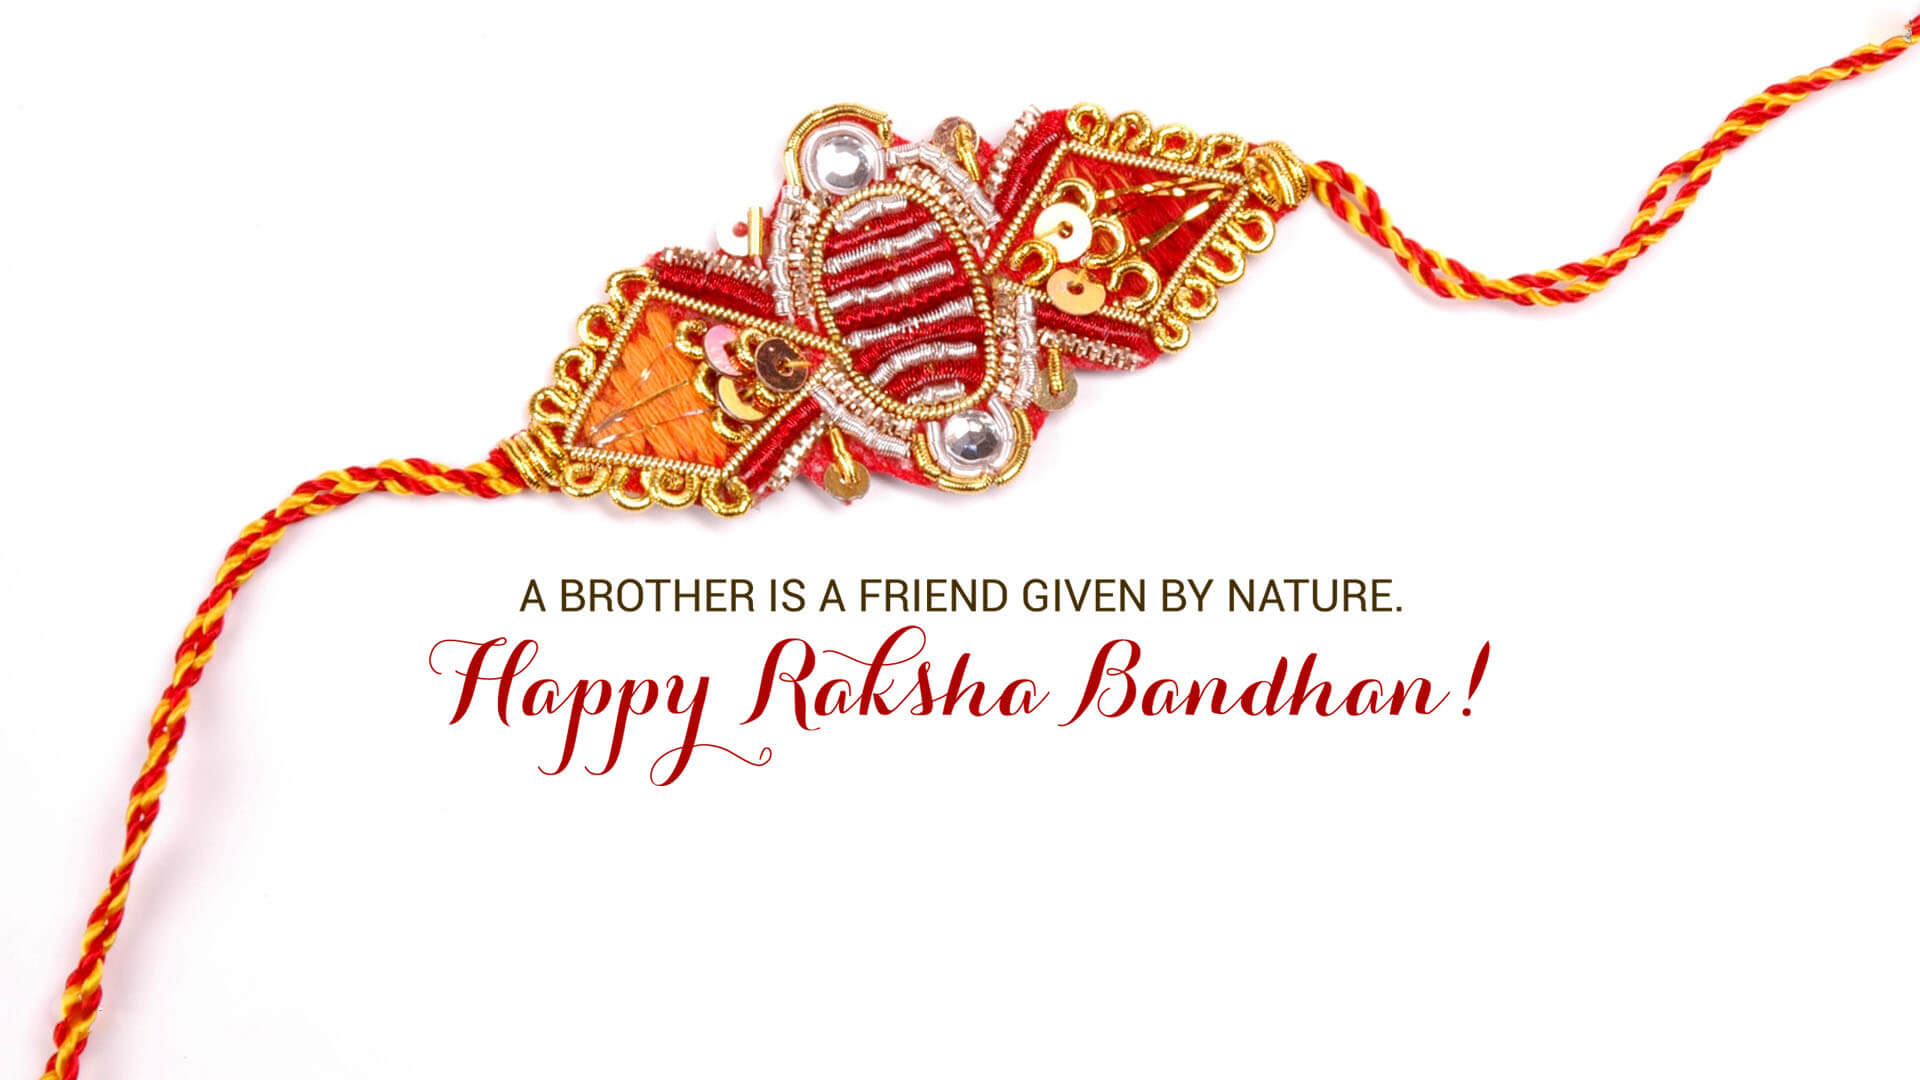 Happy Raksha Bandhan wishes images for brother